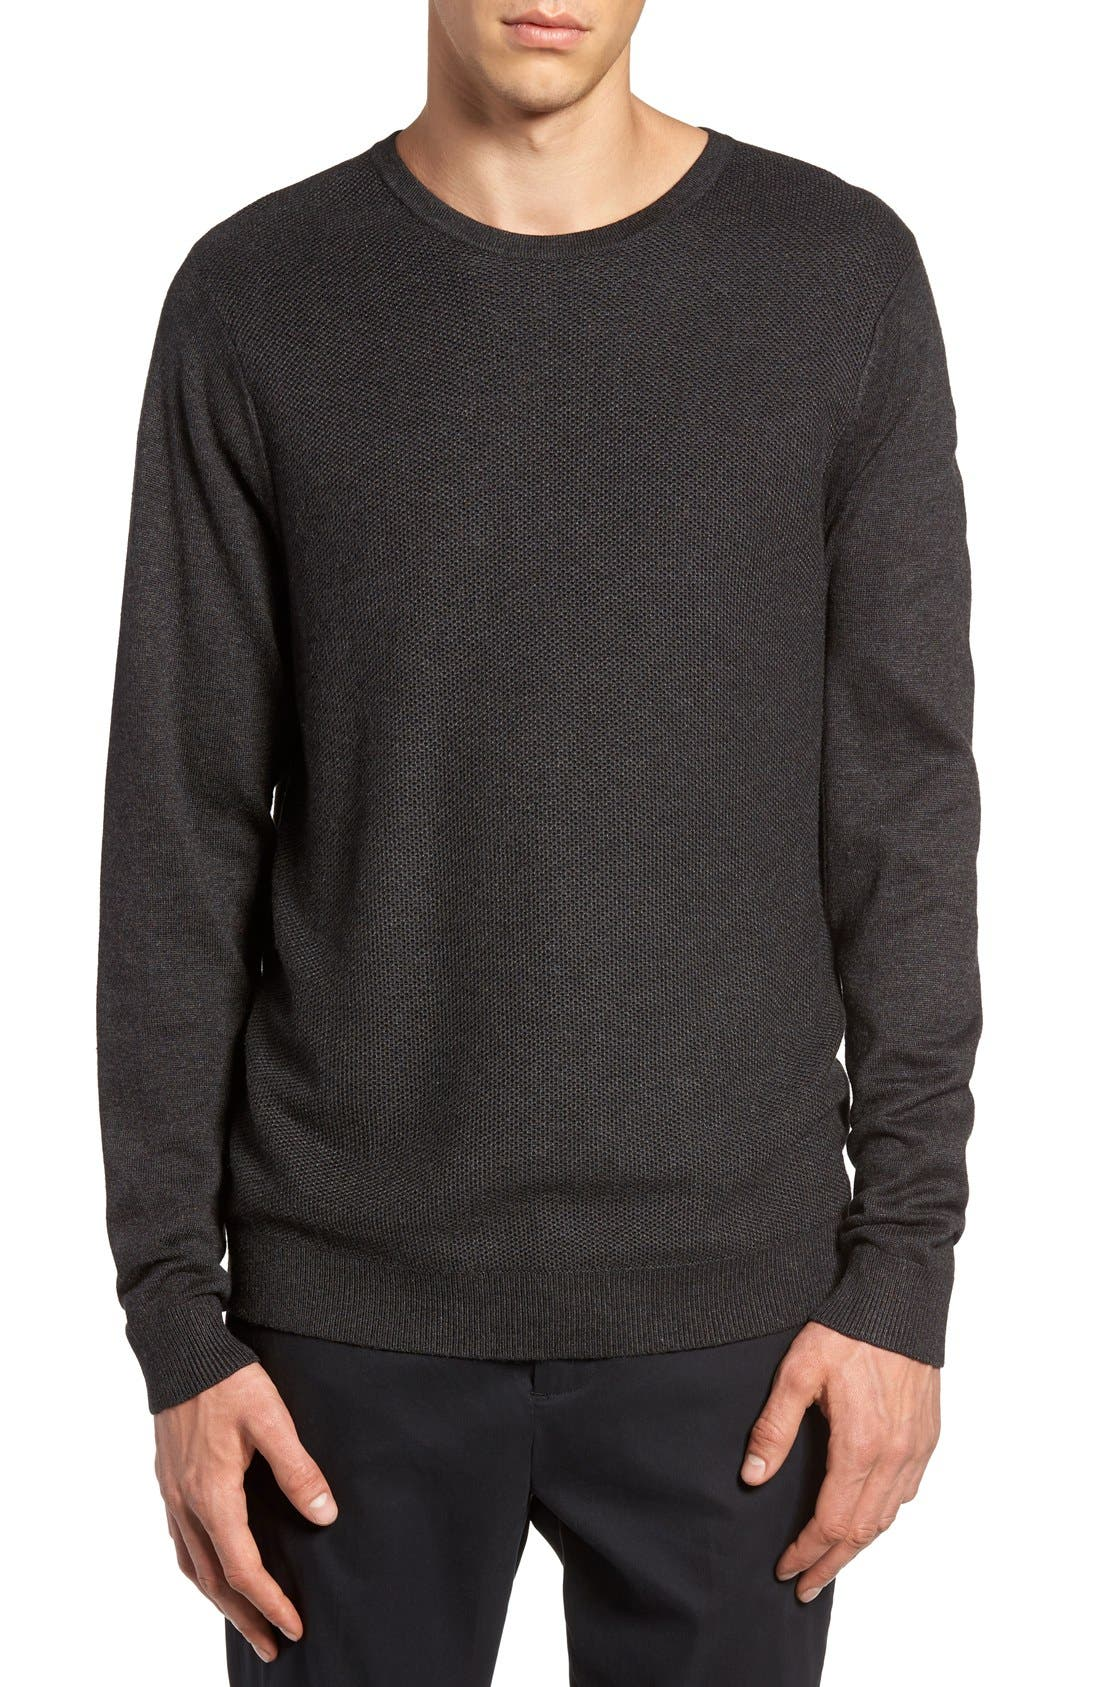 Calibrate Honeycomb Stitch Crewneck Sweater